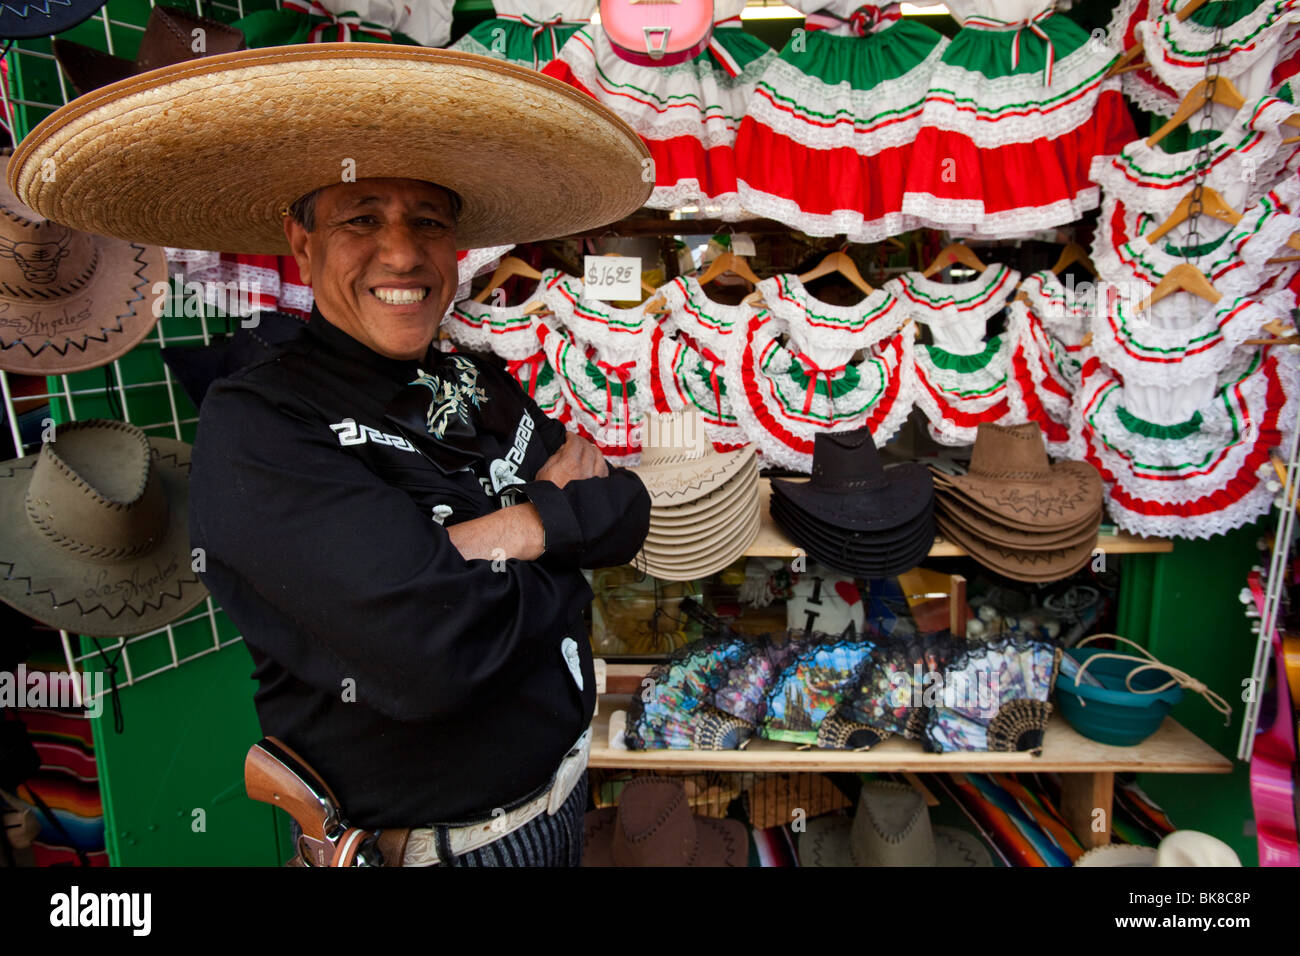 Sombrero Hat Shop Stock Photos   Sombrero Hat Shop Stock Images - Alamy 9aad3e08fd5